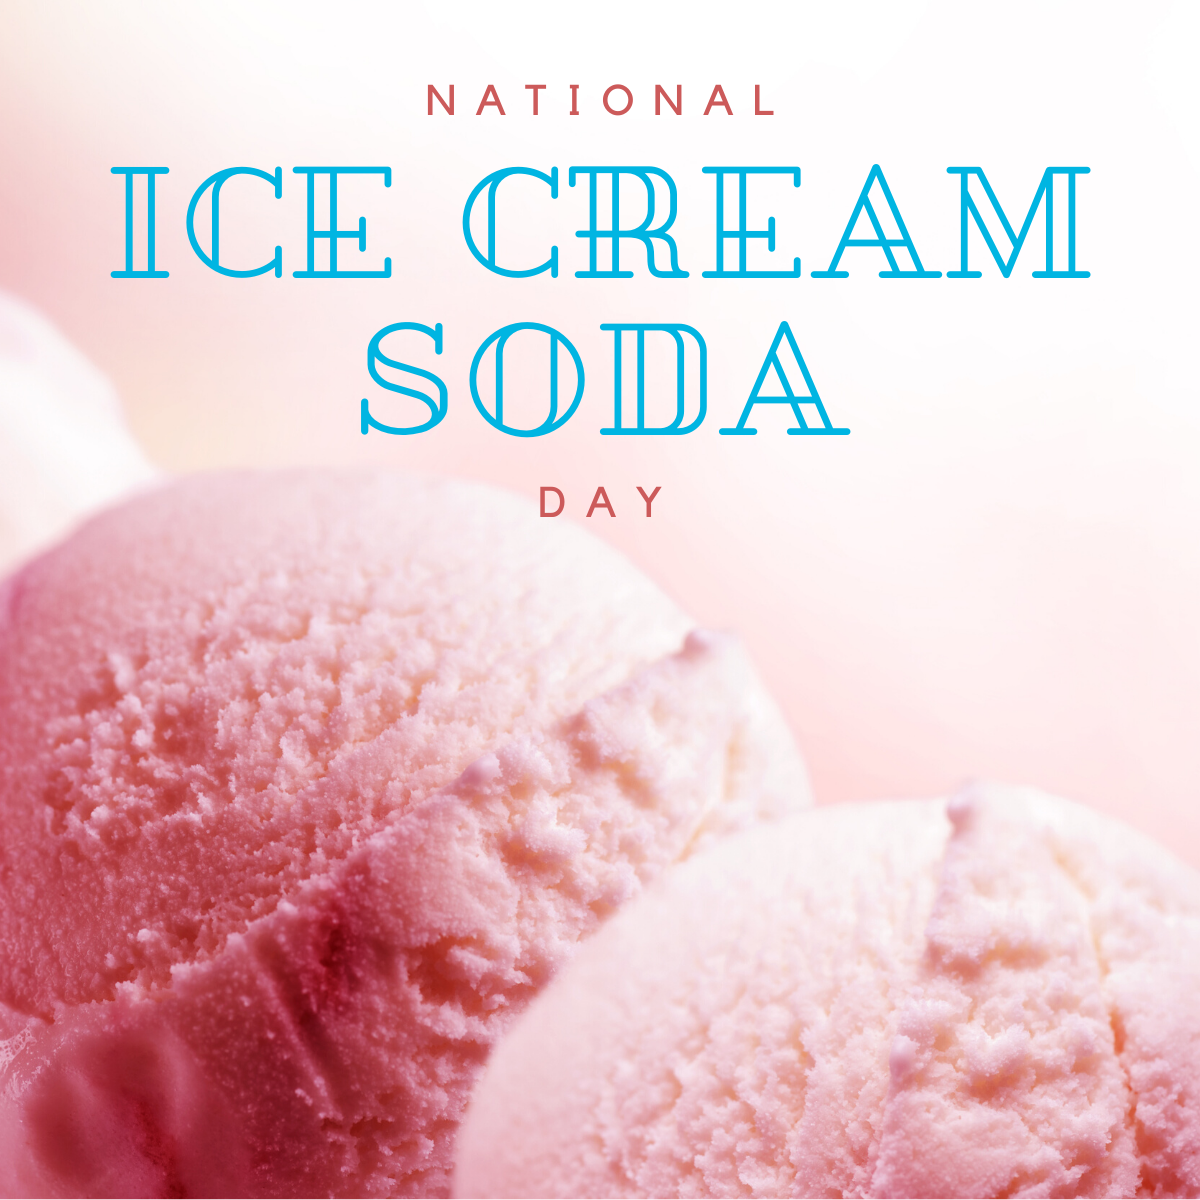 National-Ice-Cream-Soda-Day-option4